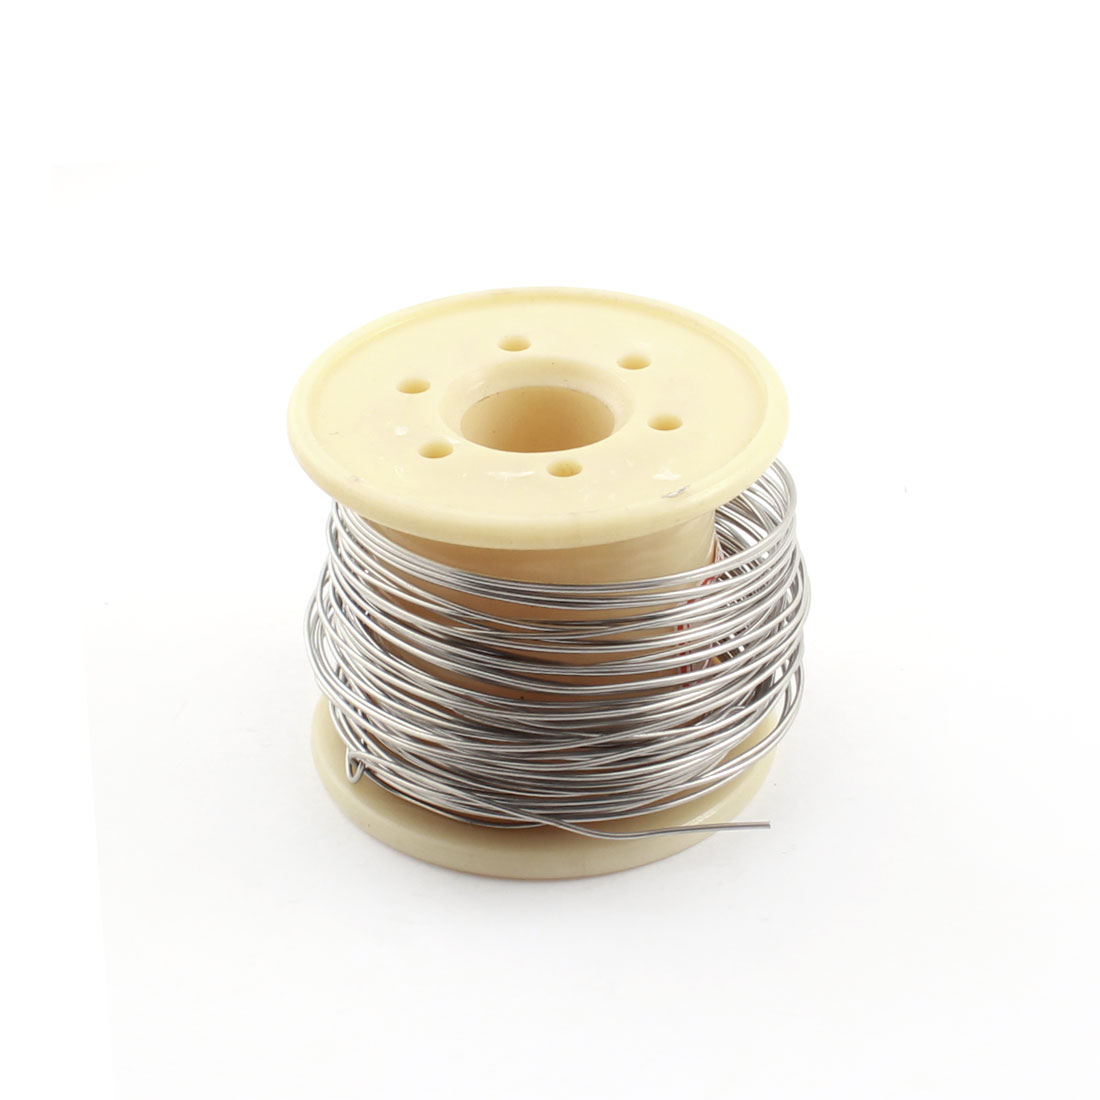 7.5Meter 25ft 0.8mm Diameter AWG20 2.168 Ohm/M Nichrome Resistance Heating Coils Resistor Wire Cable